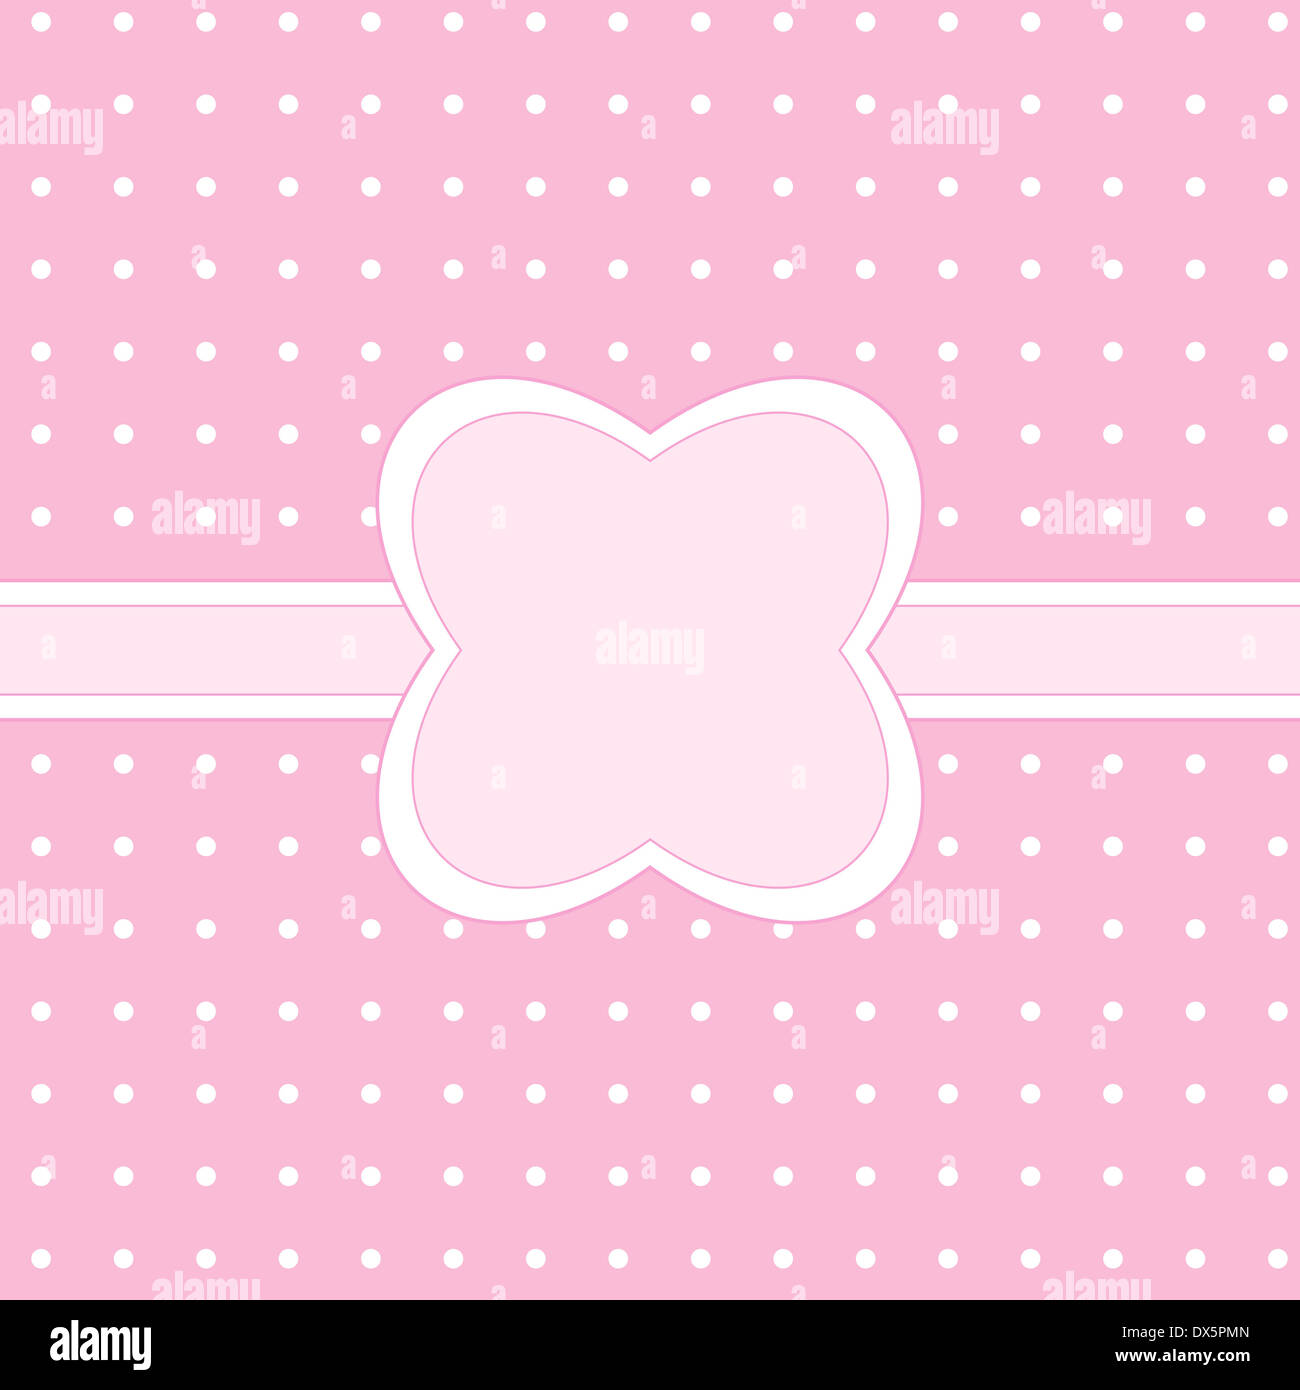 Pink banner design on polka dots Stock Photo